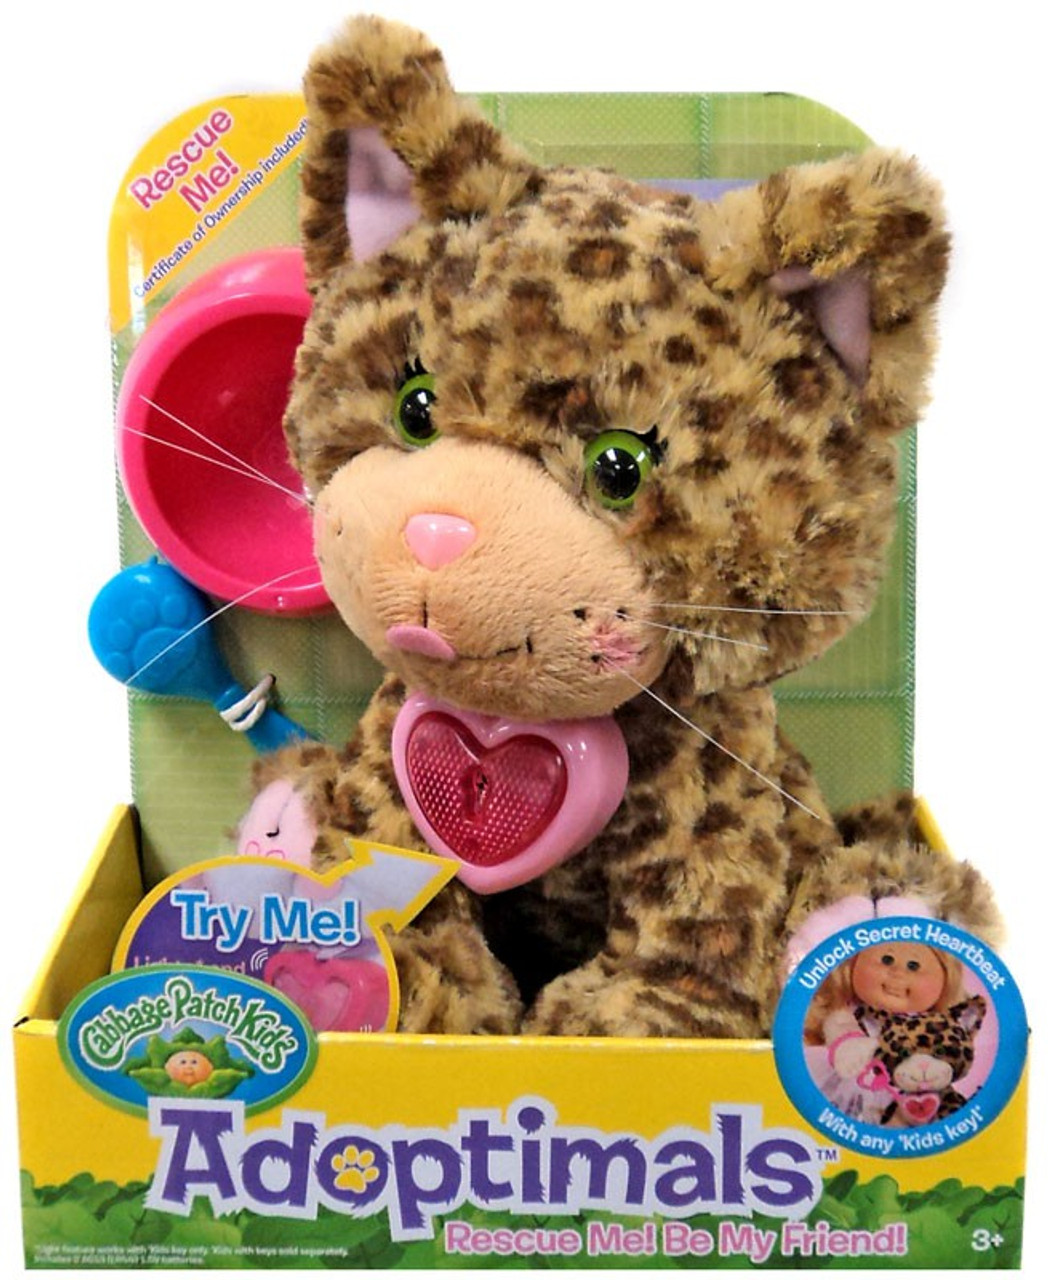 Cabbage Patch Kids Adoptimals Bengal Kitty 9 Plush Wicked Cool Toys - ToyWiz